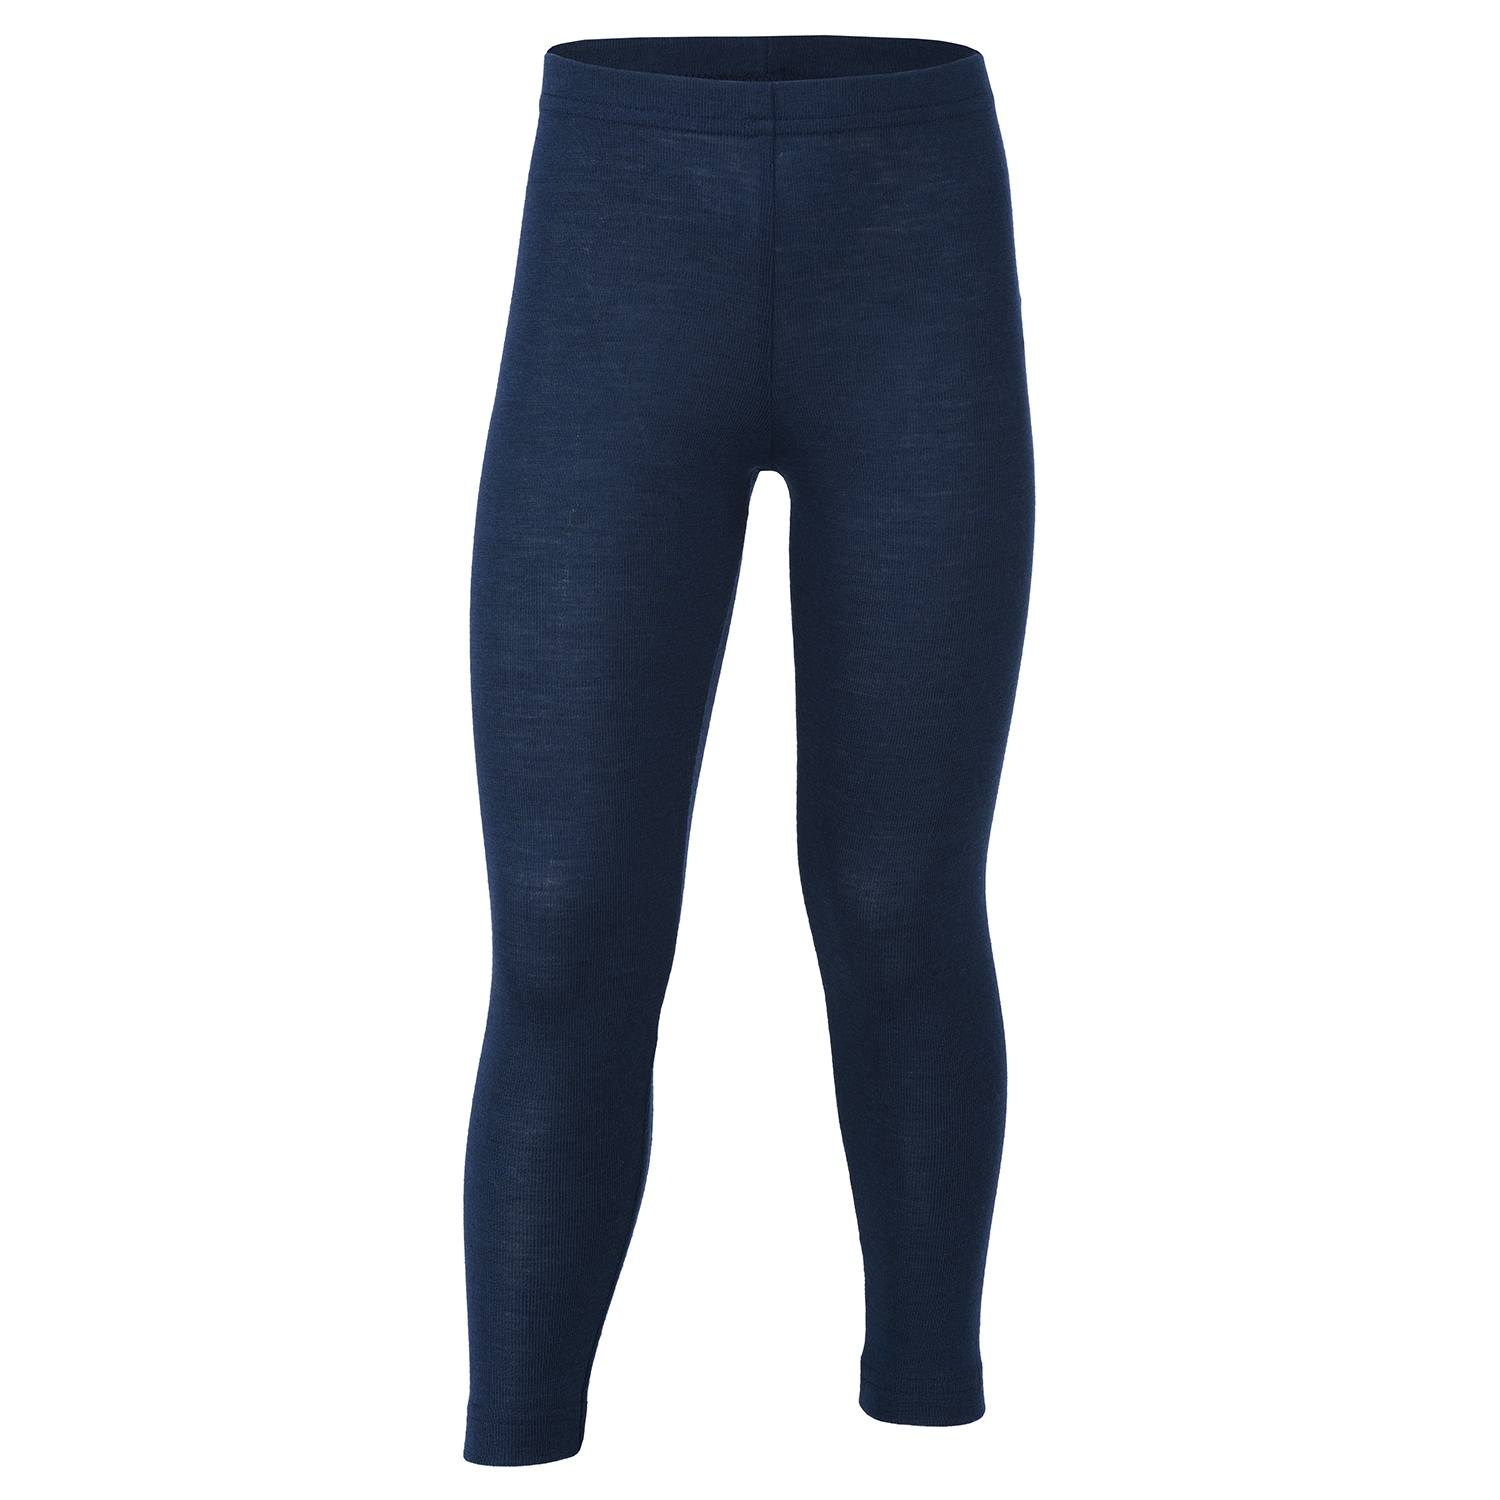 Image of   Engel bukser / leggings, uld/silke - Navy